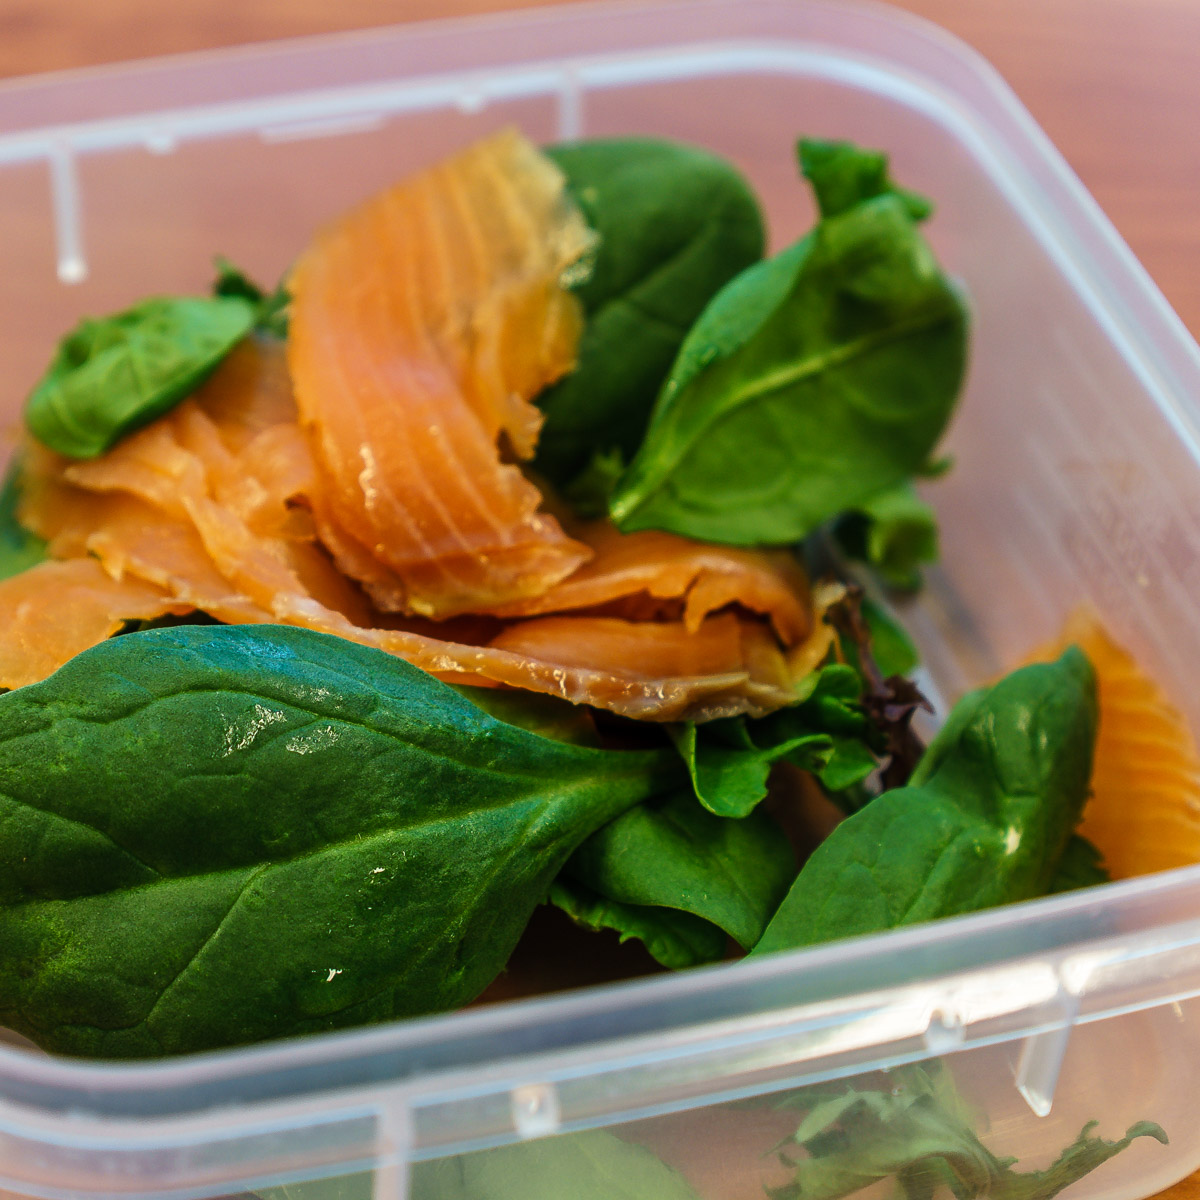 Smoked salmon and leaves